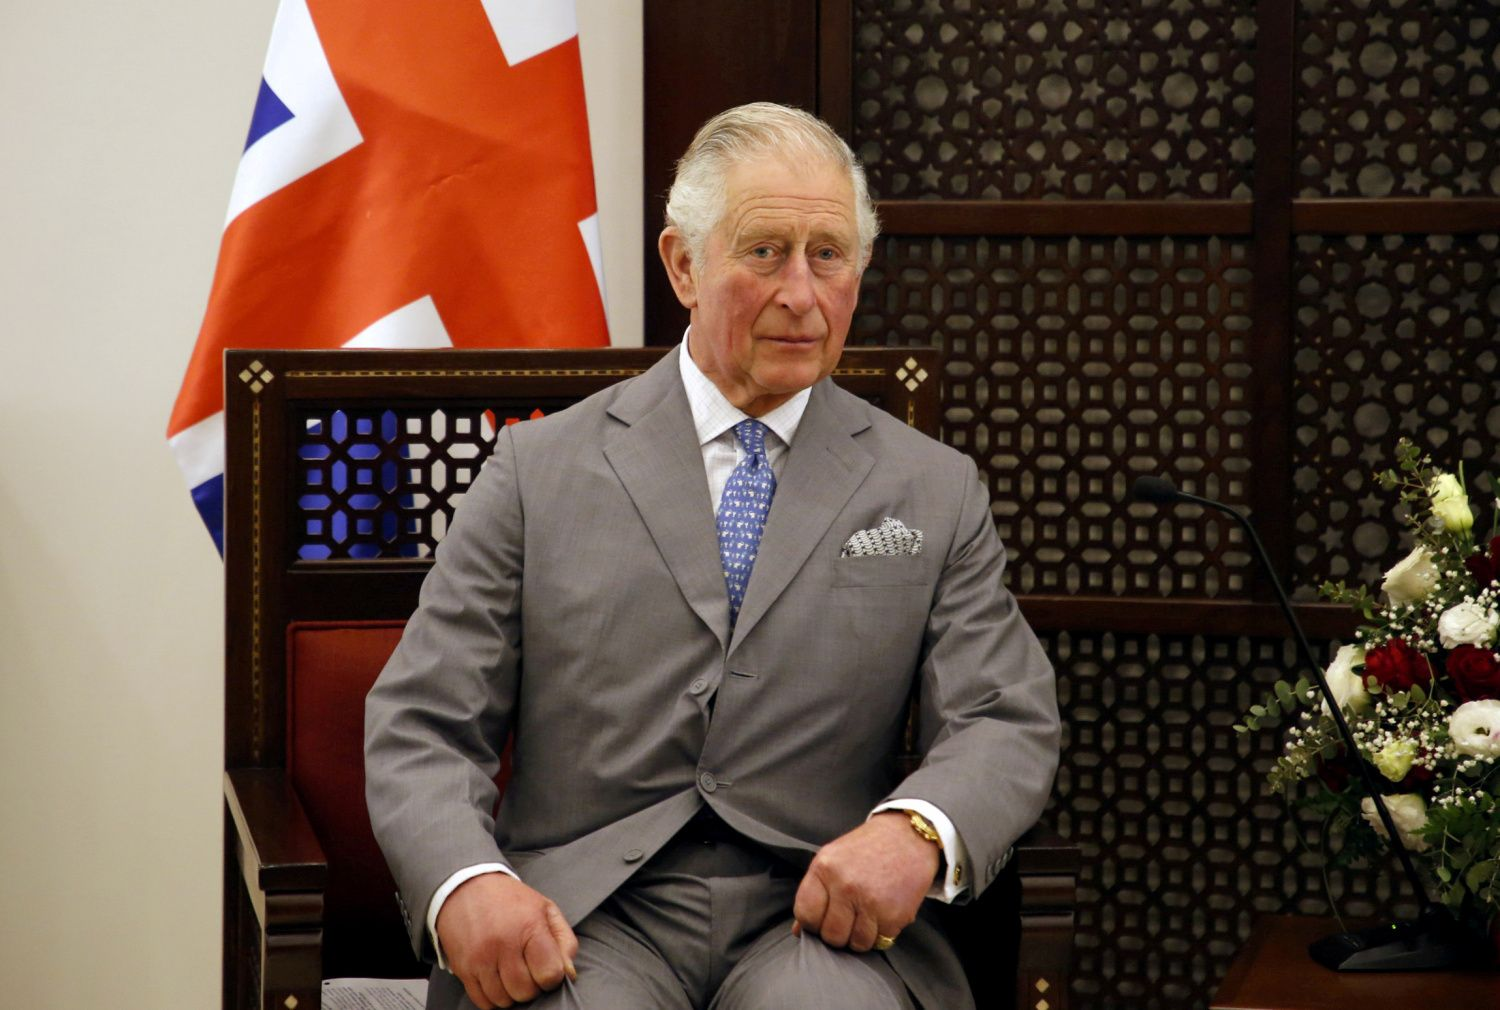 Prince Charles Remained Silent; 'Snubbed' Prince Andrew's